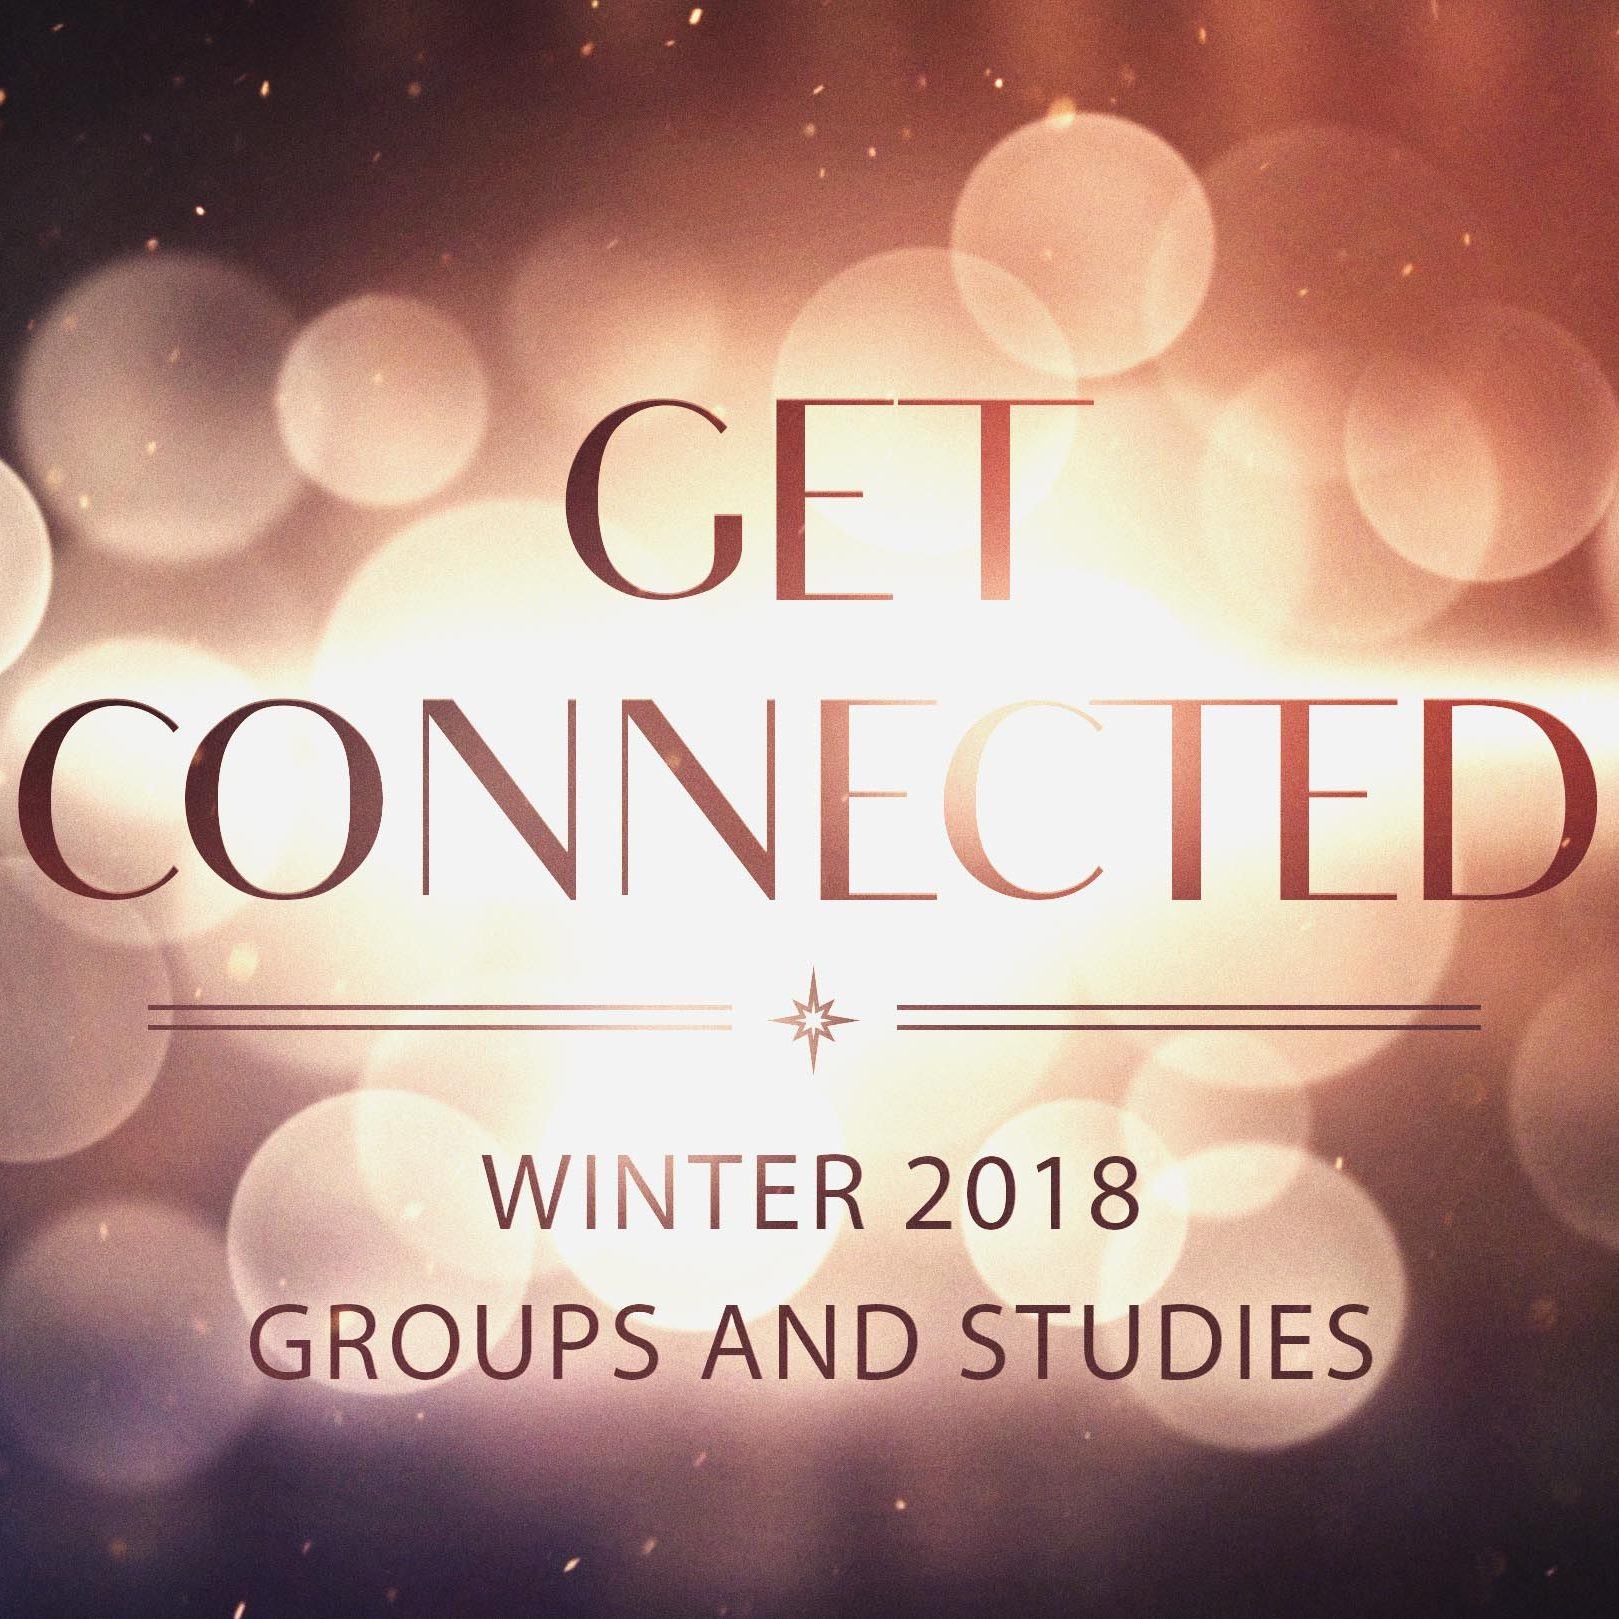 Winter Classes and Groups